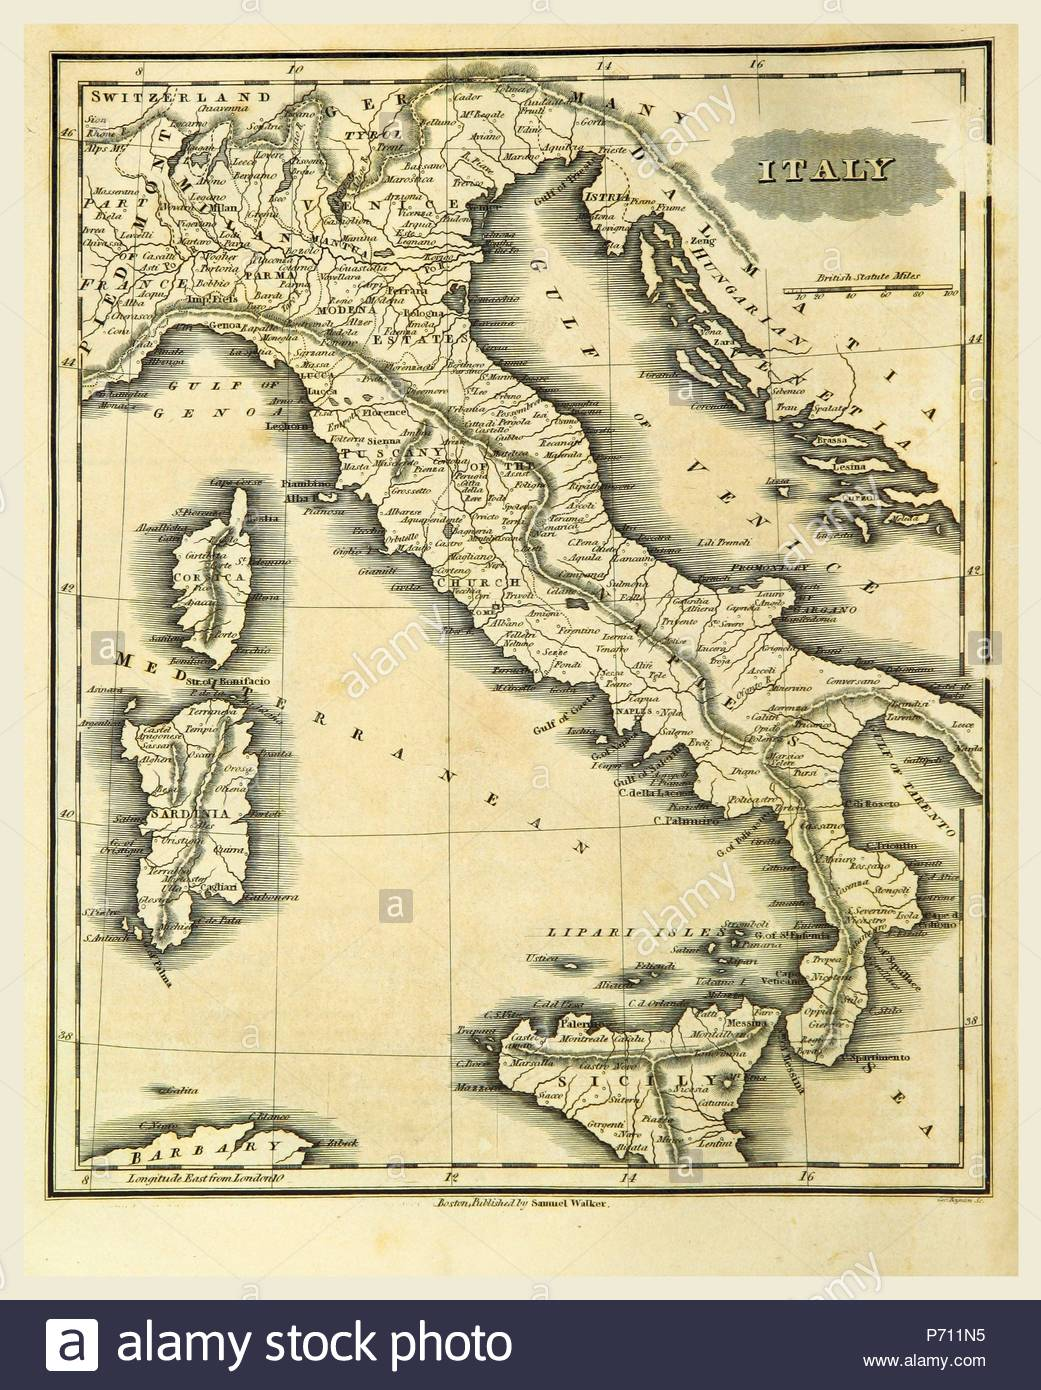 Map of Italy, 19th century engraving. - Stock Image